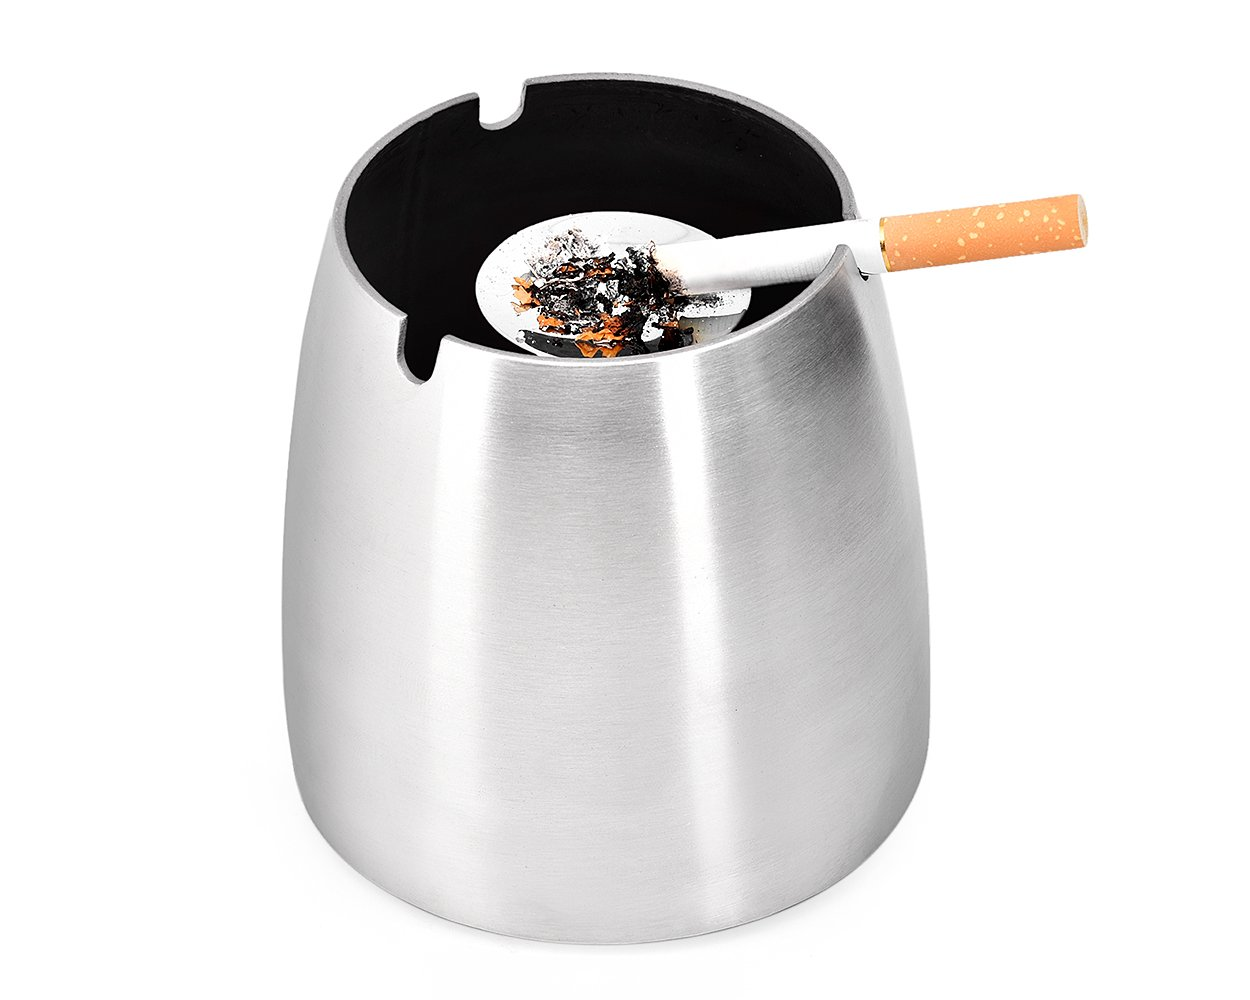 Ace Select Stainless Steel Ashtray, Windproof Cigar Ashtray, Unbreakable Smokeless Ash Holder